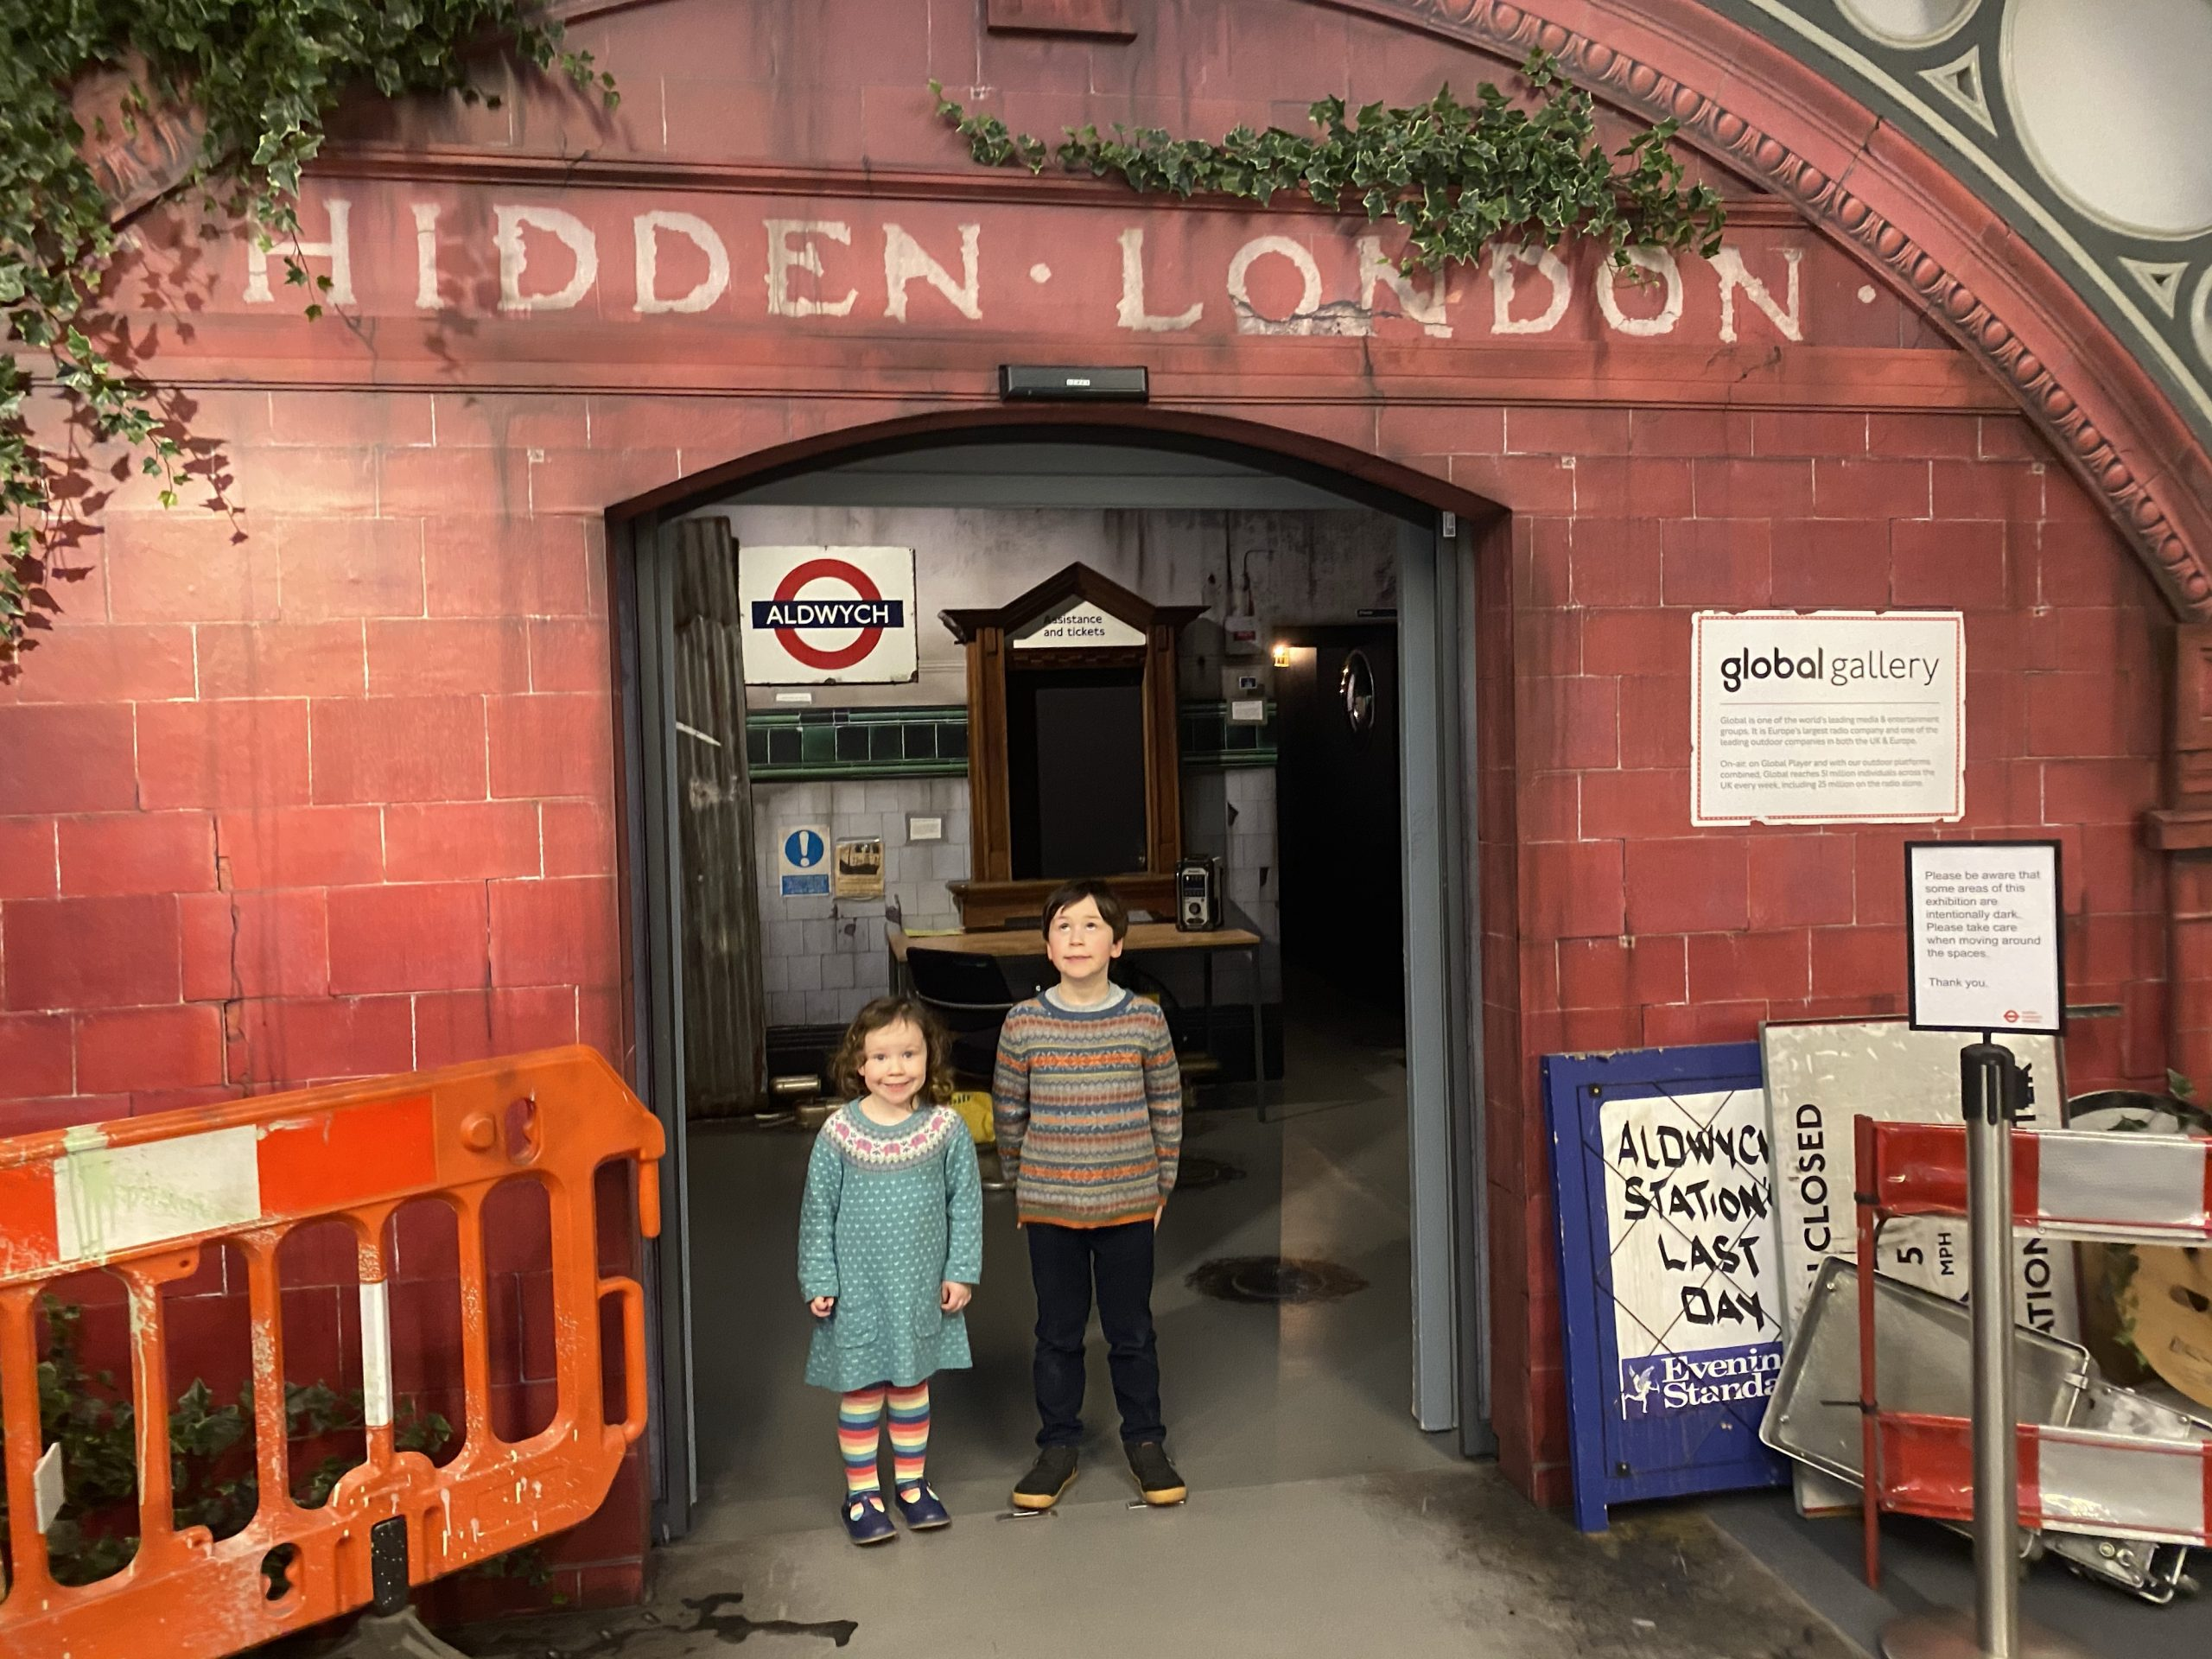 London Transport Museum Hidden London exhibition entrance